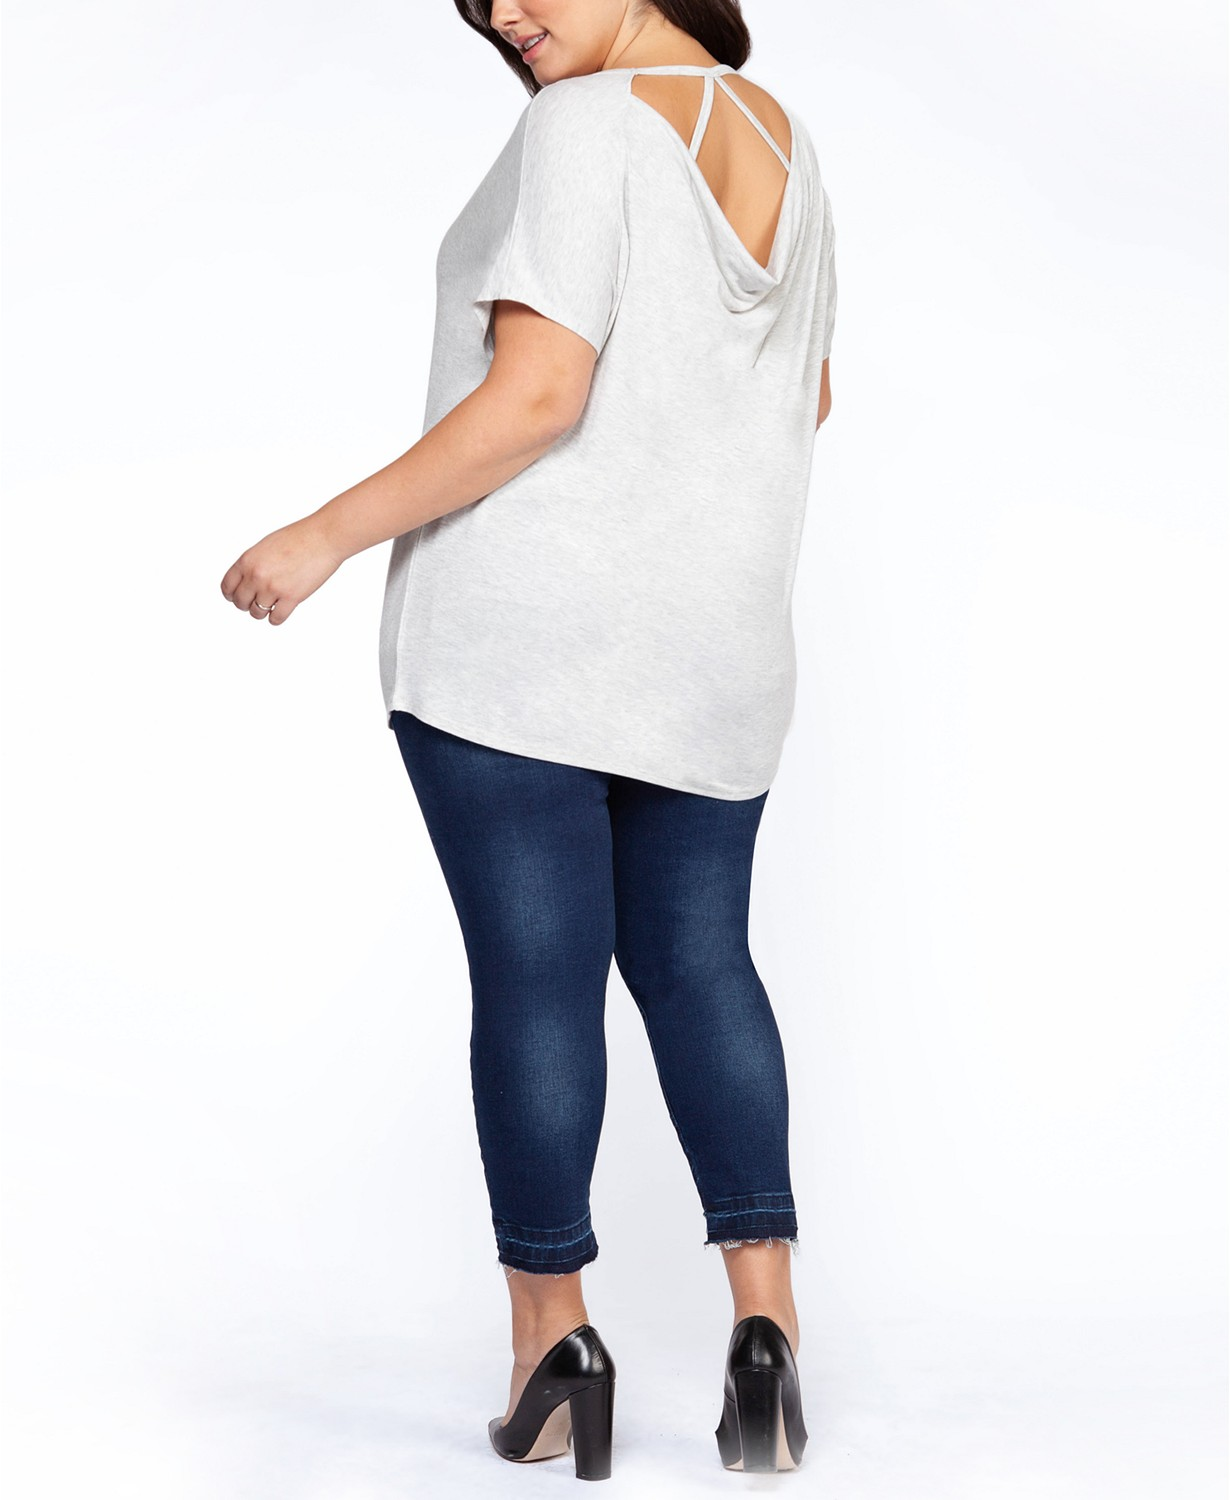 (50% OFF Deal) Plus Size Strappy-Back T-Shirt $19.50